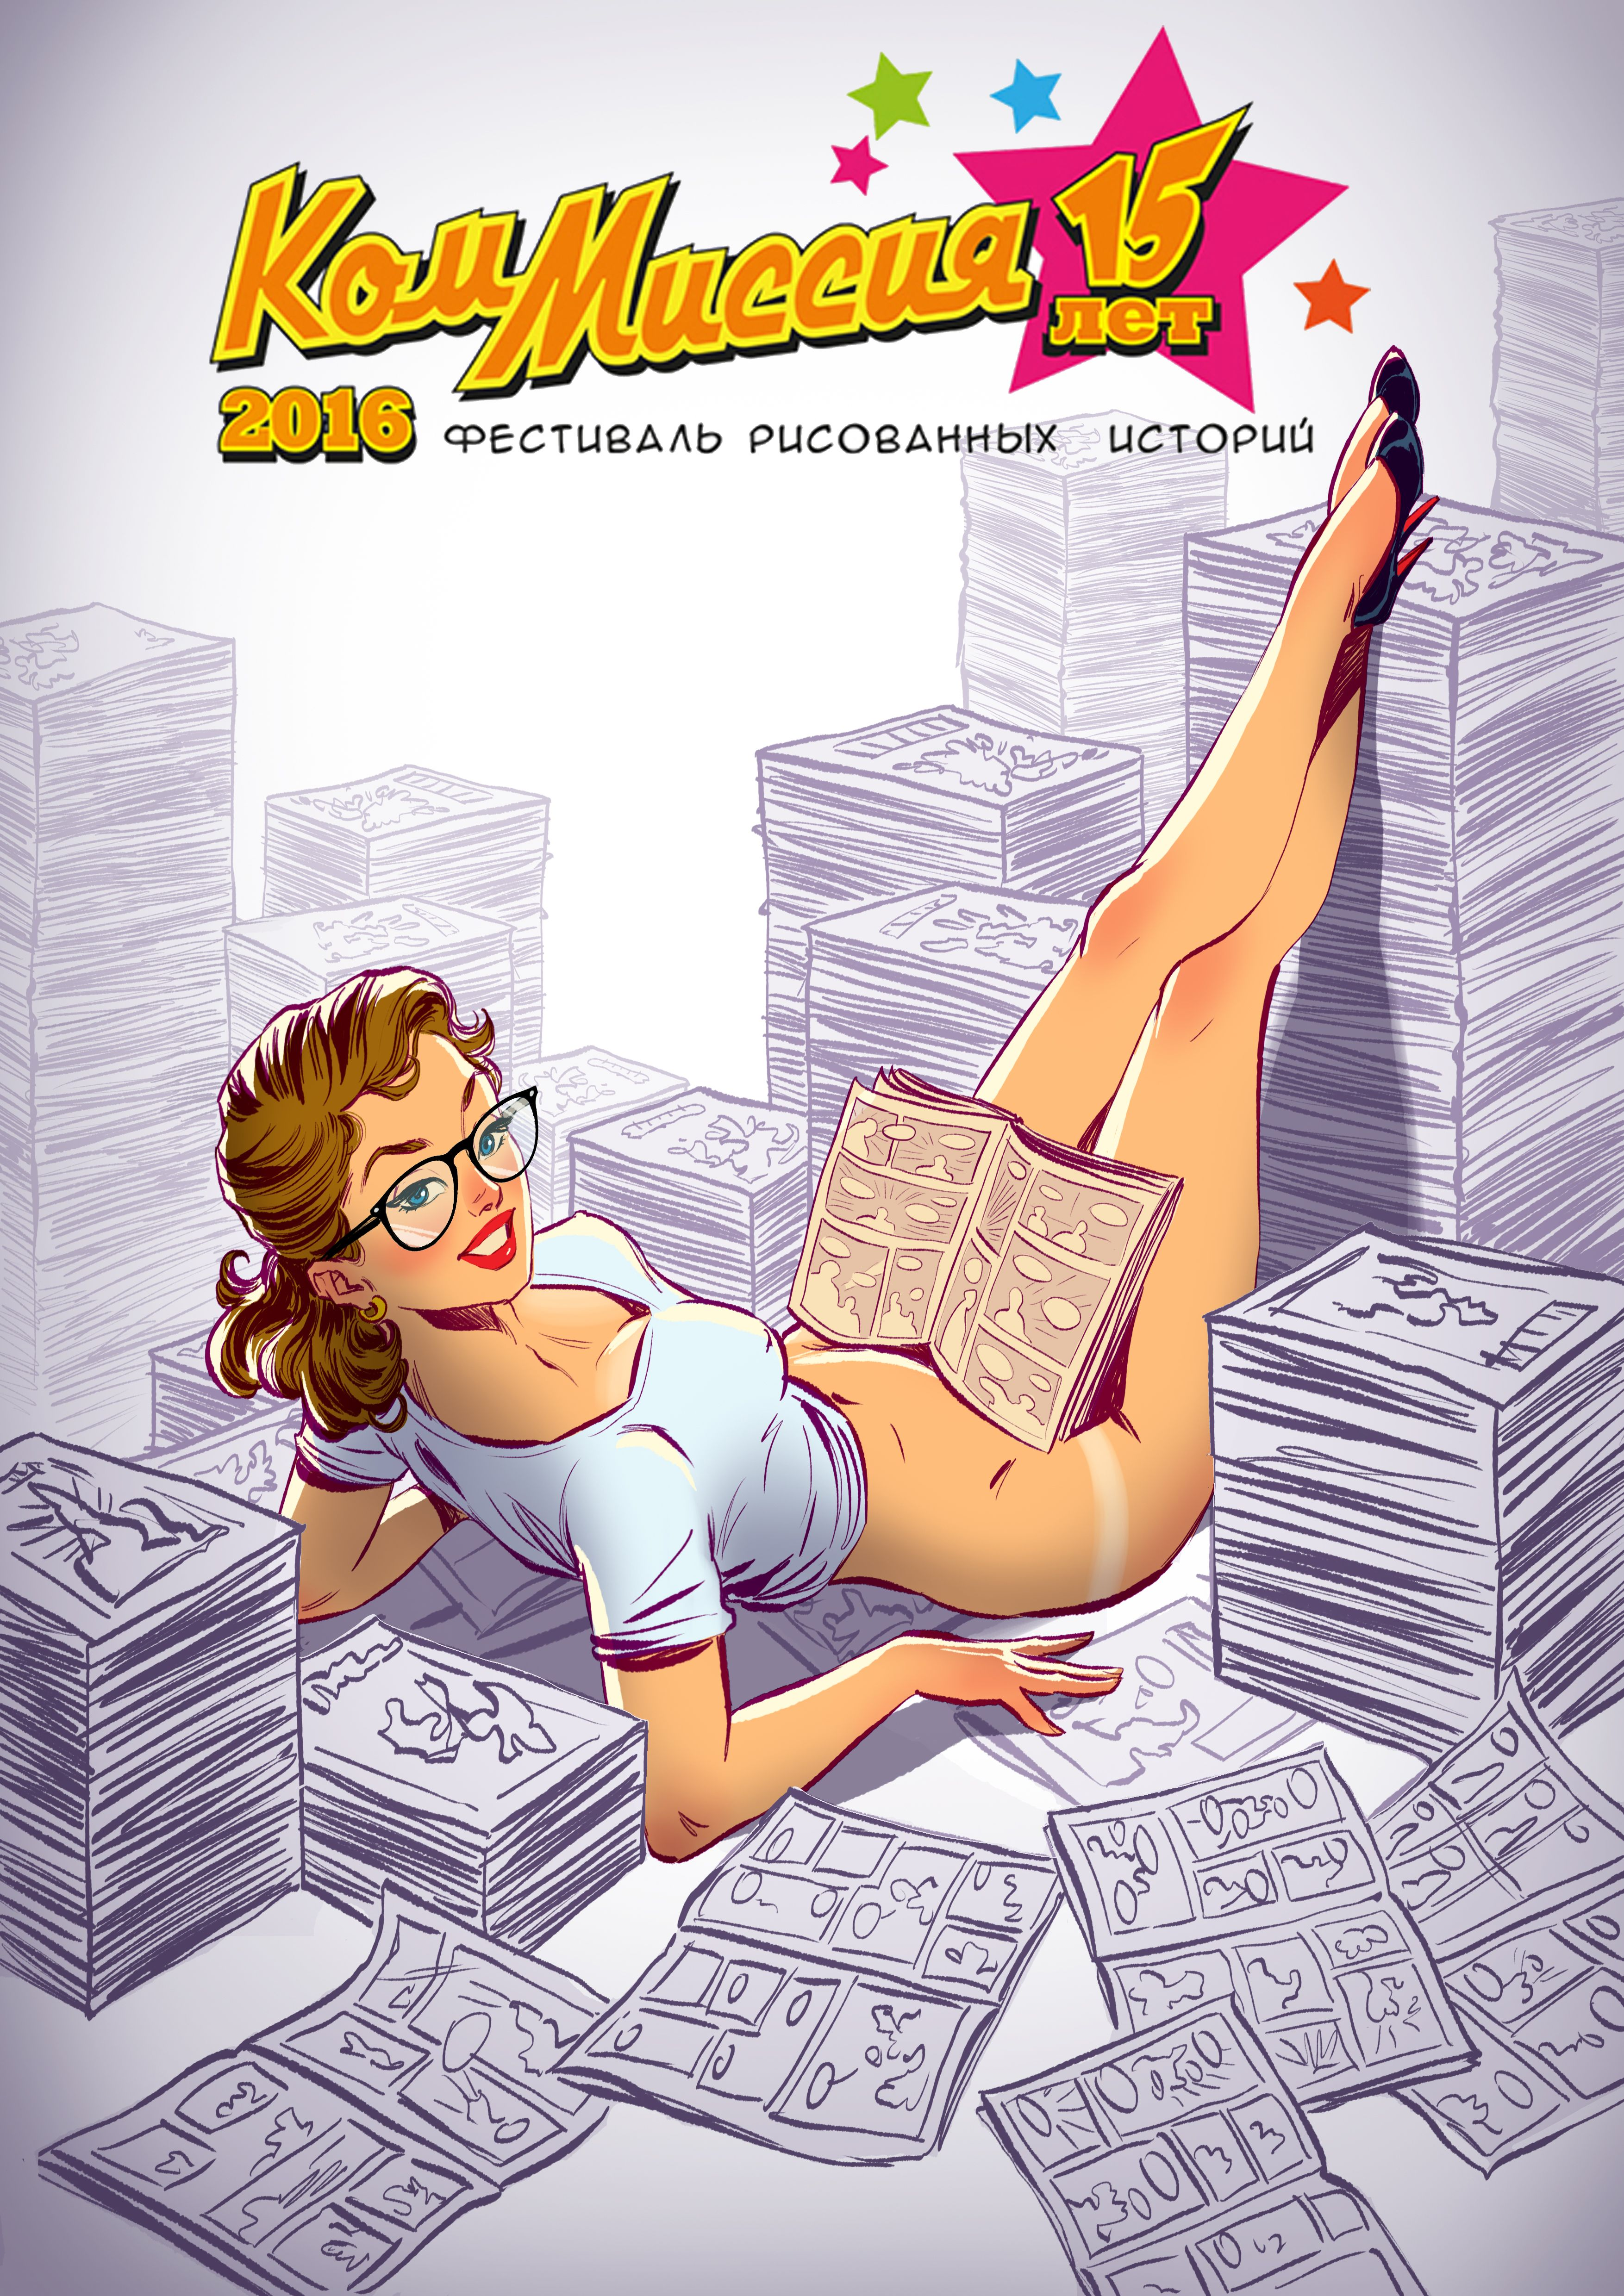 New pin-up by Andrei Tarusov 88